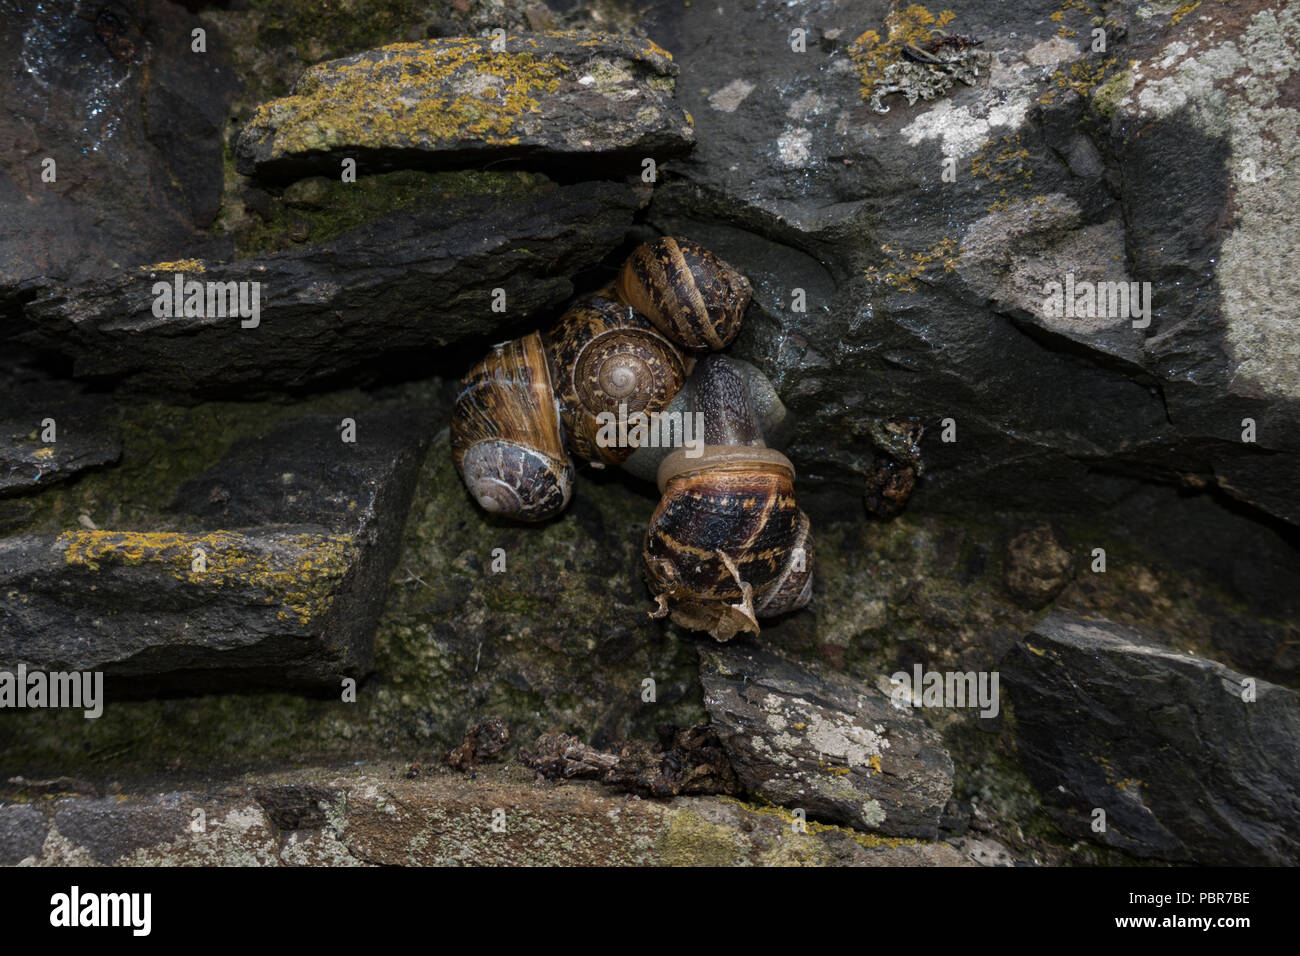 Group of Garden Snails Helix aspersa  on old stone wall during hot summer weather. Scotland. - Stock Image